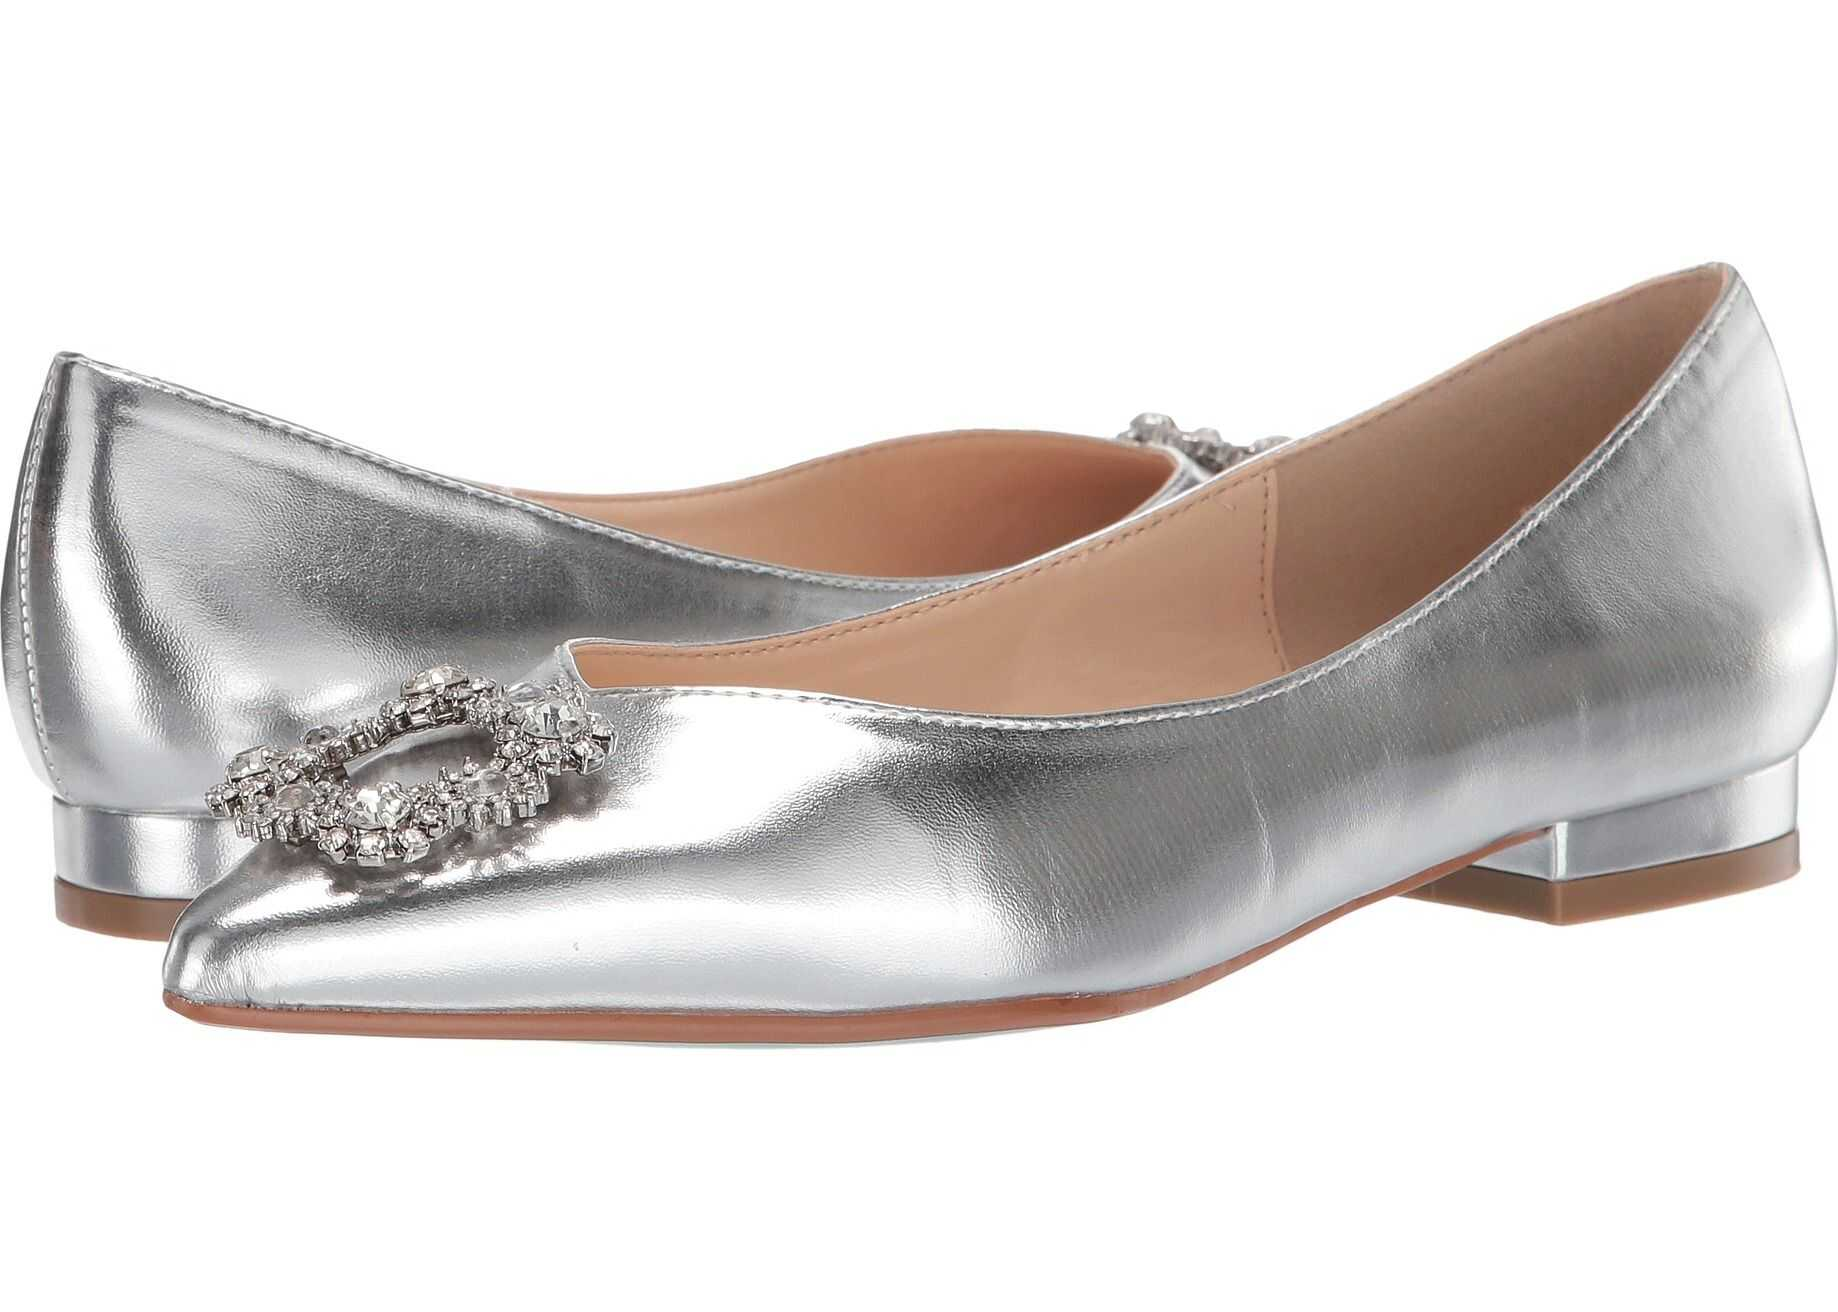 Blue by Betsey Johnson Diana Flat Silver Metallic